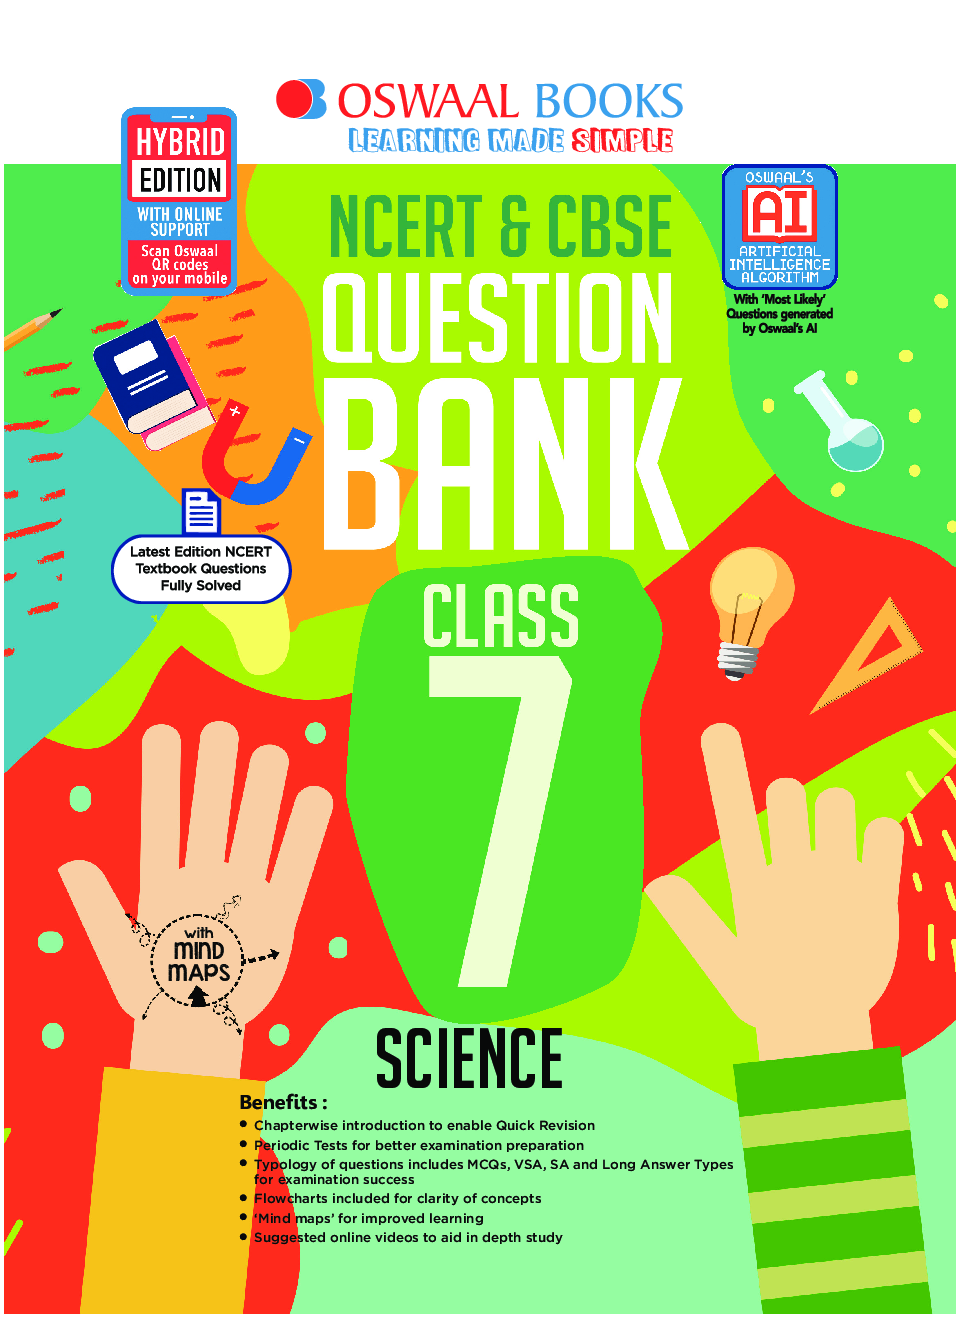 Oswaal NCERT & CBSE Question Bank For Class - VII Science (March 2021 Exam) - Page 1